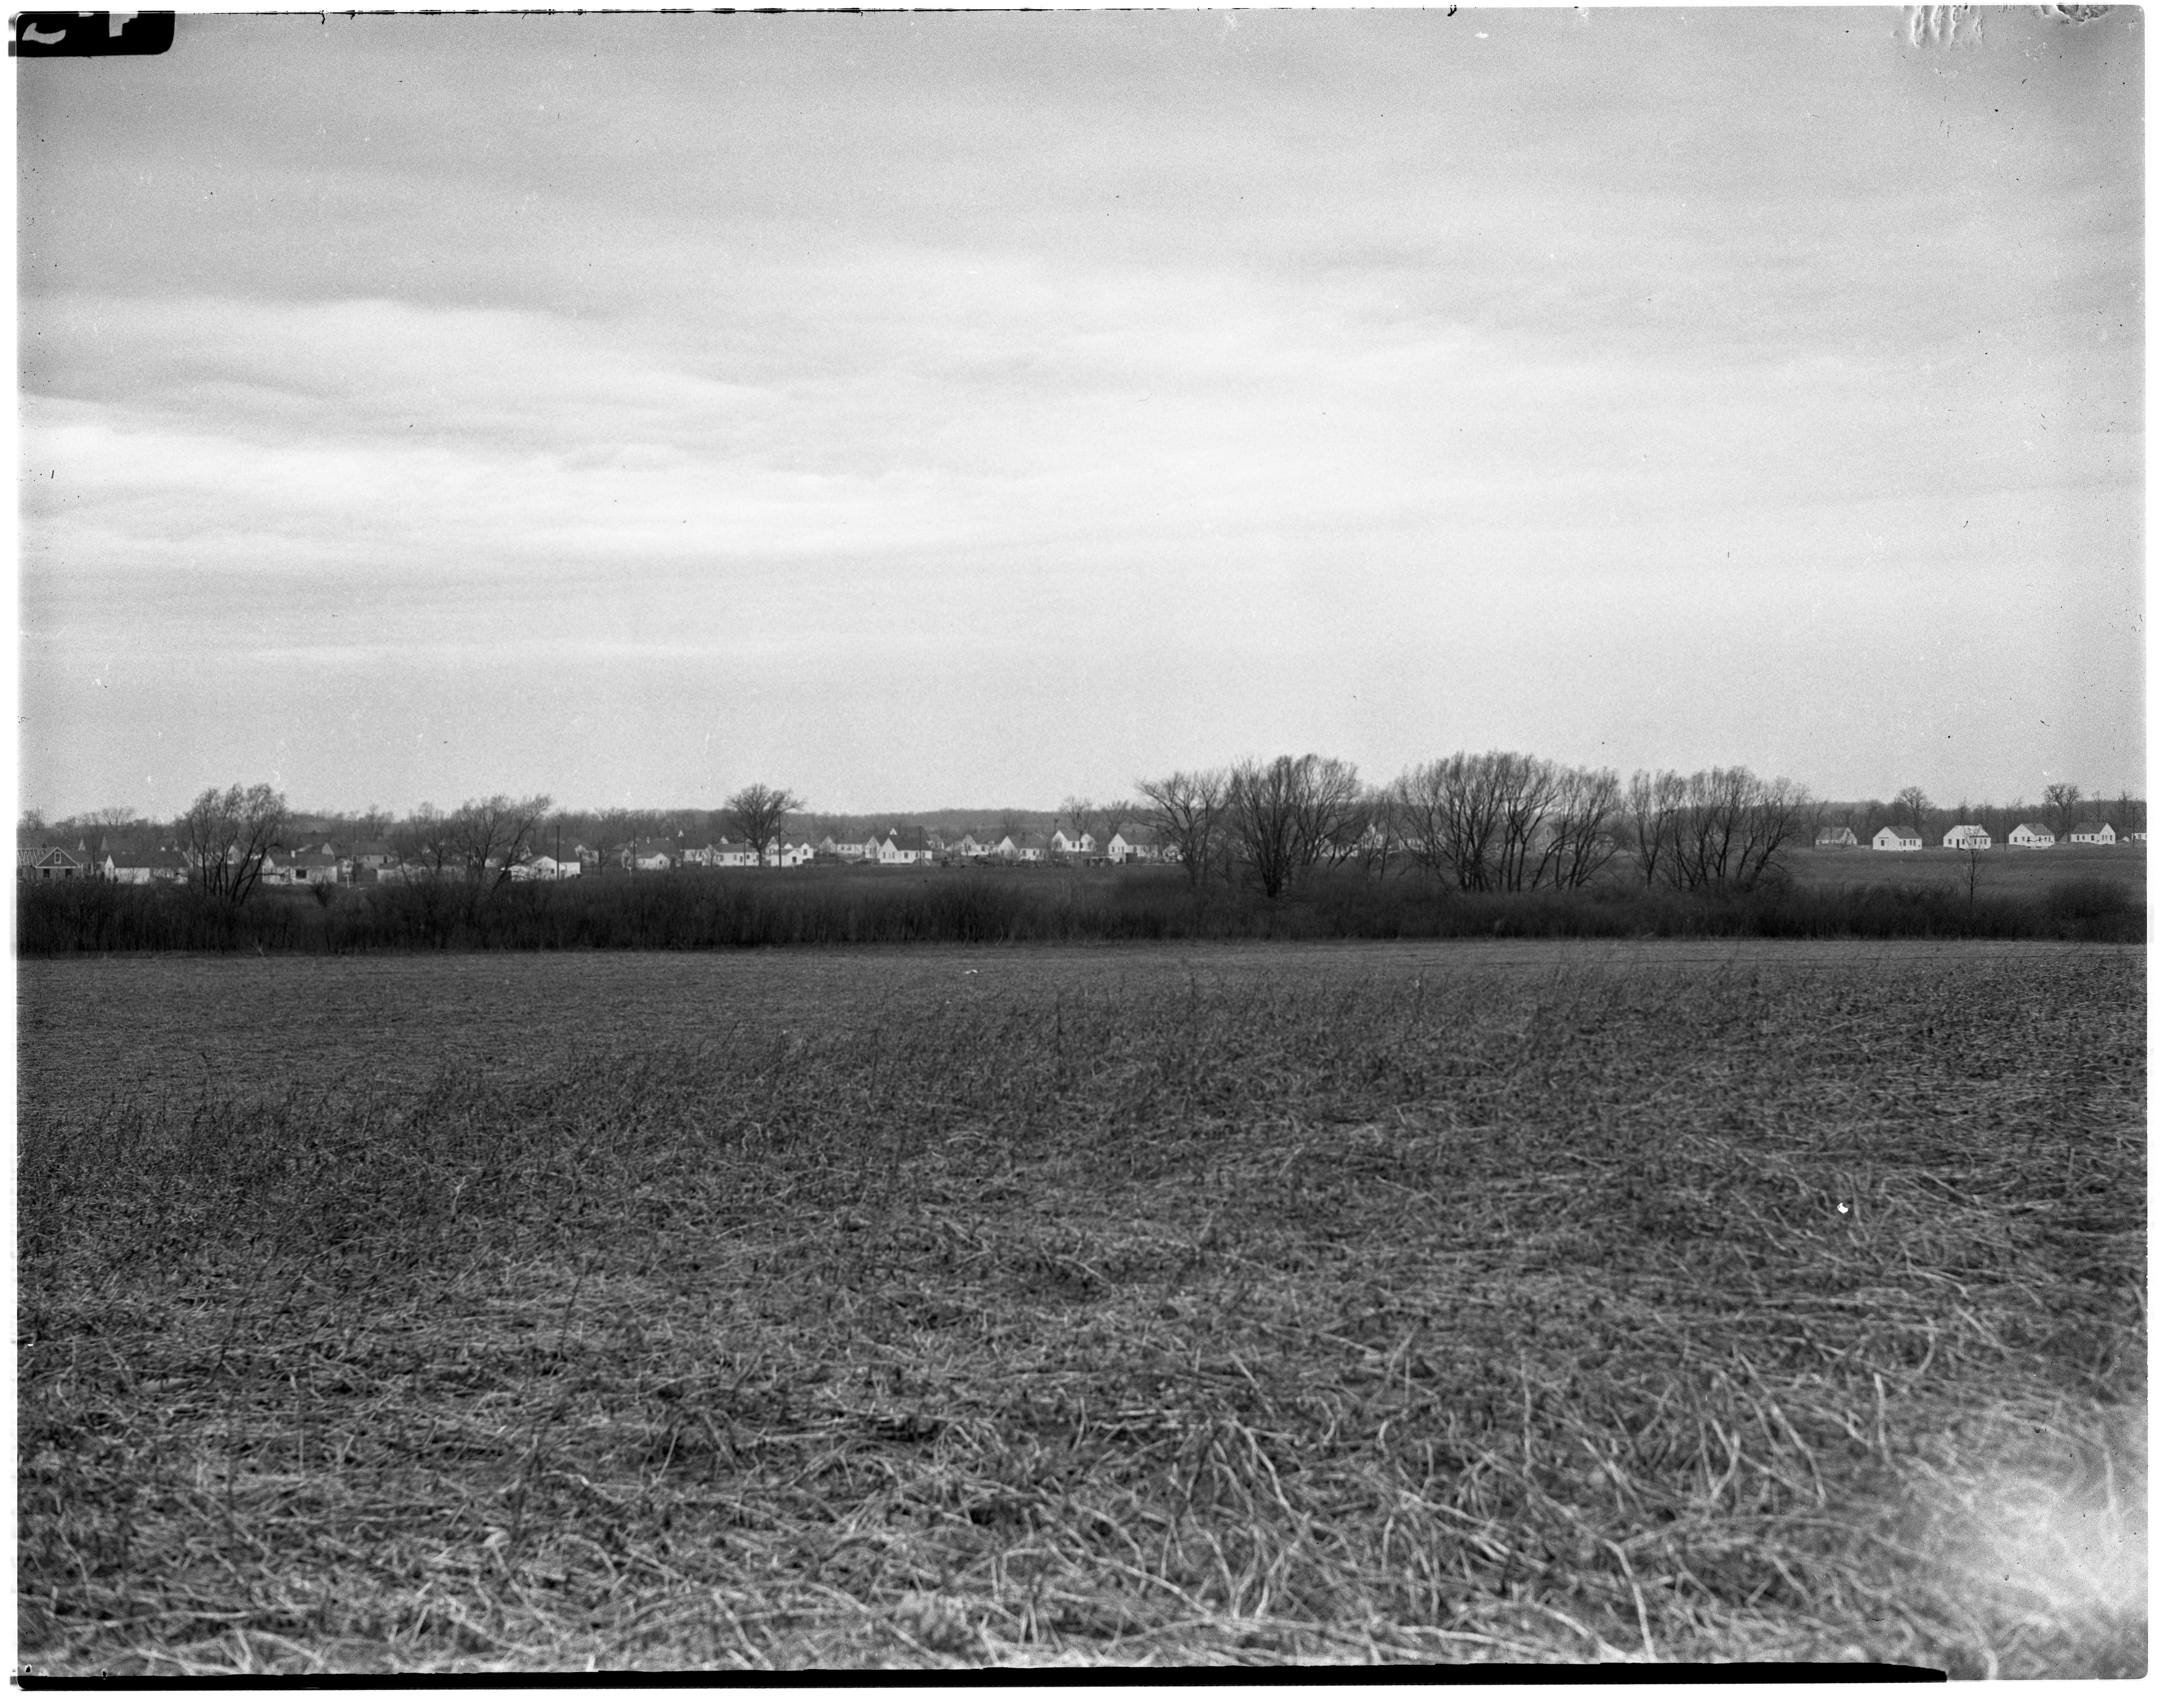 Land for New Building Development, Pittsfield Village, May 1943 image